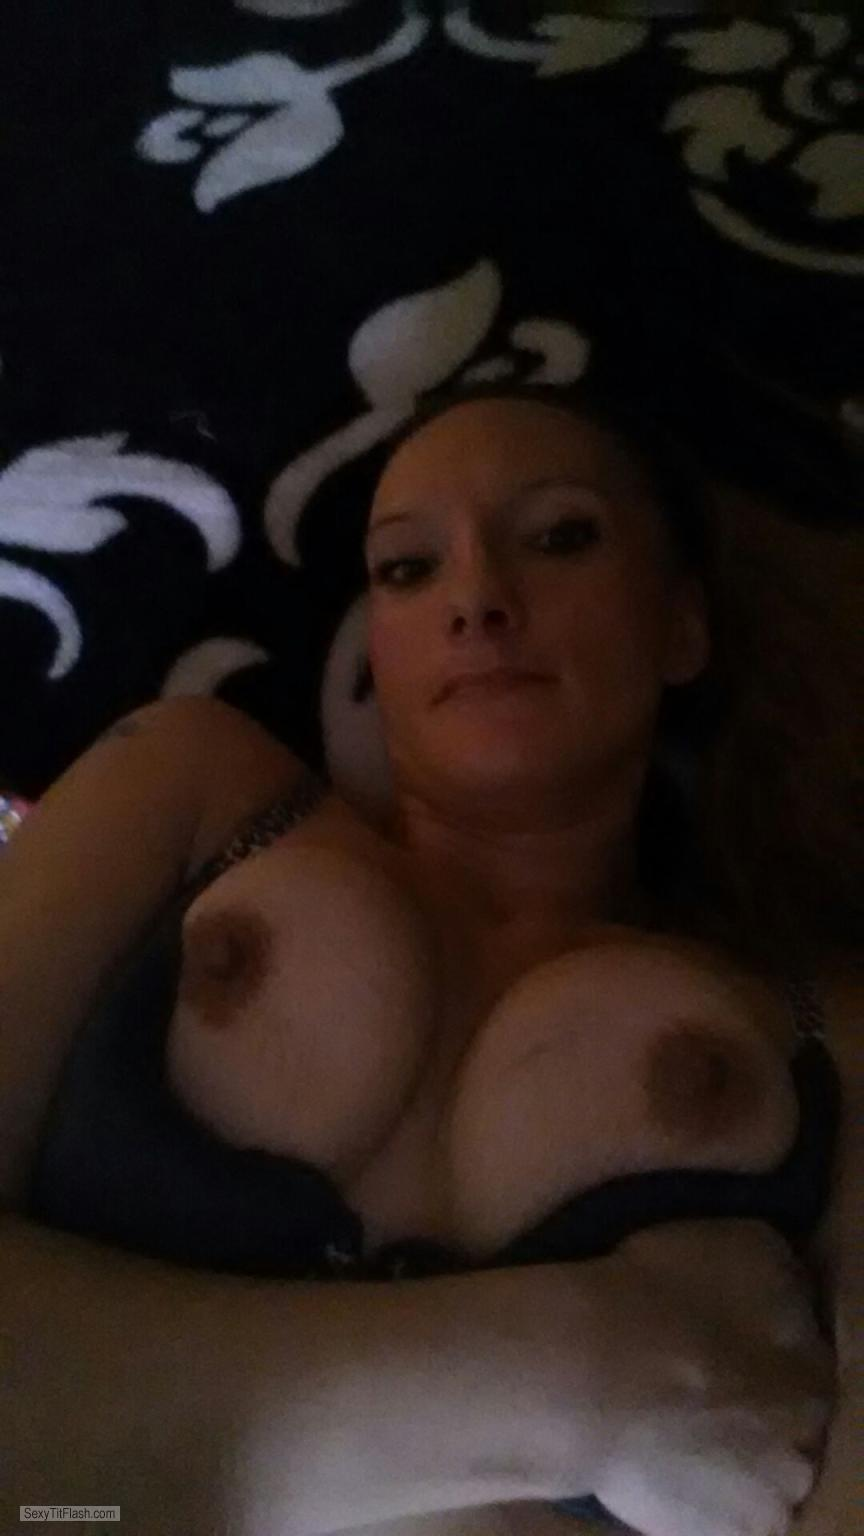 Tit Flash: My Medium Tits (Selfie) - Topless Whiteryce from United States